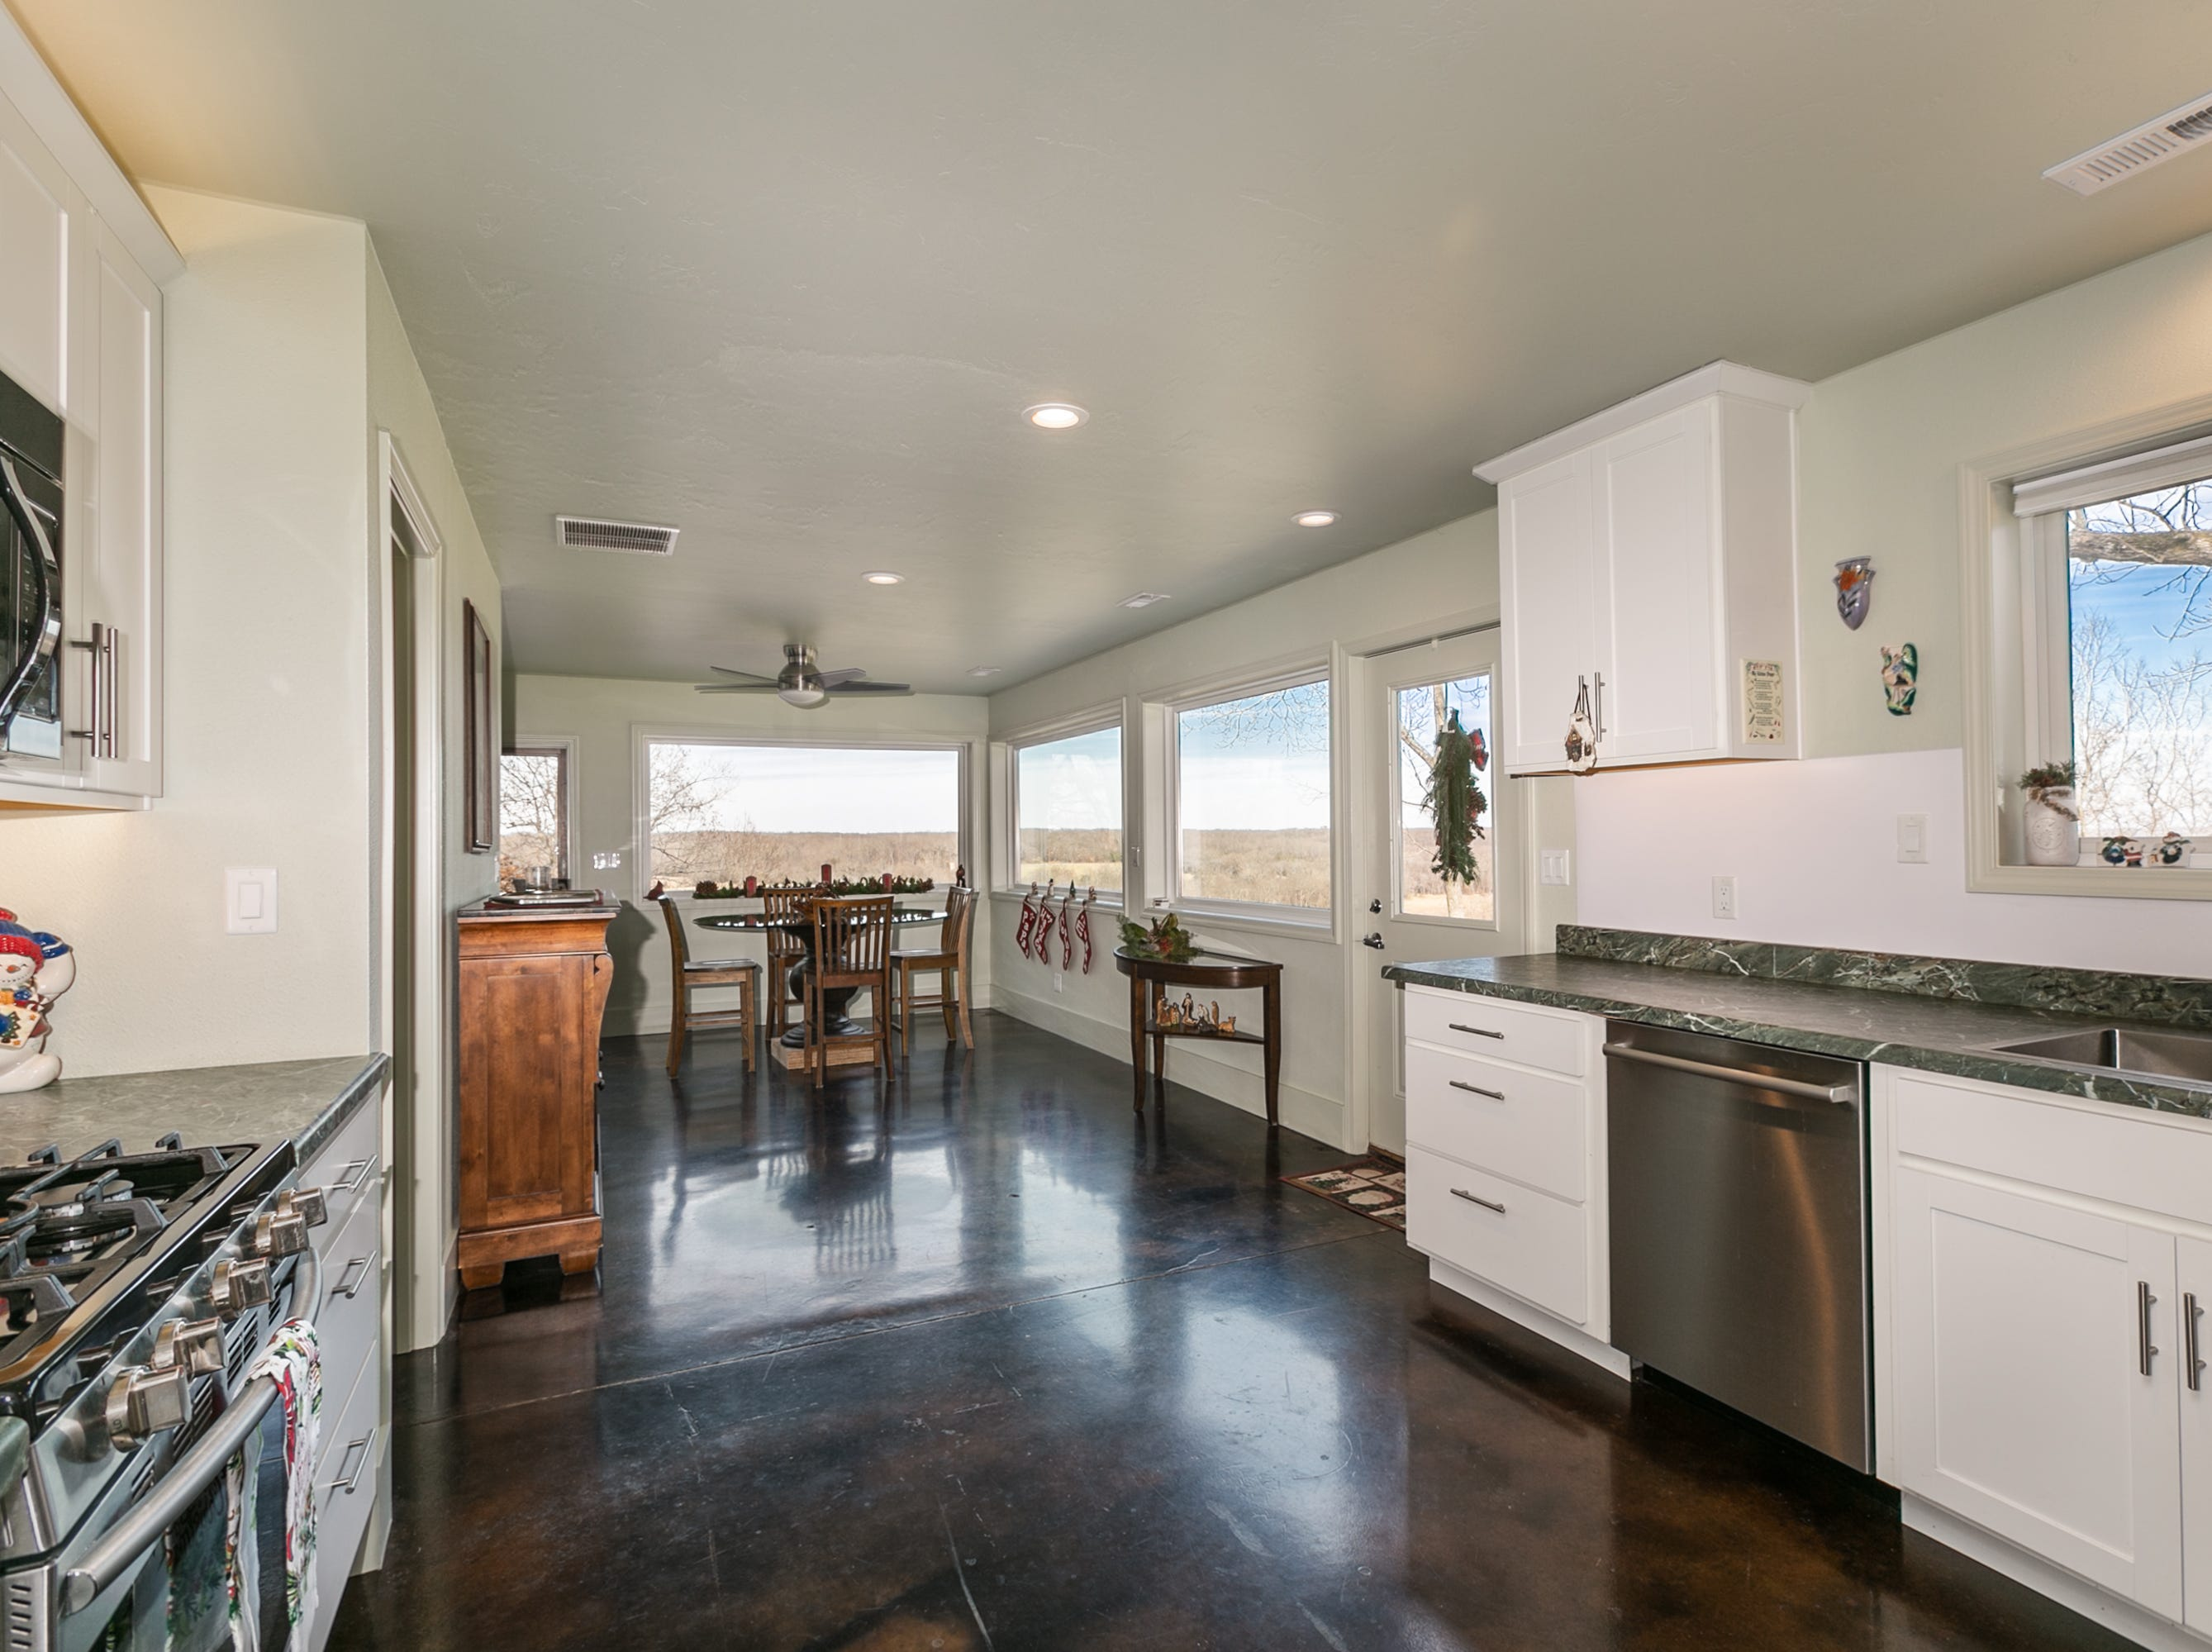 The full-size kitchen offers plenty of space to cook and a gas-burning range. It's just steps from the dining area as well as the man cave, which makes entertaining easy.